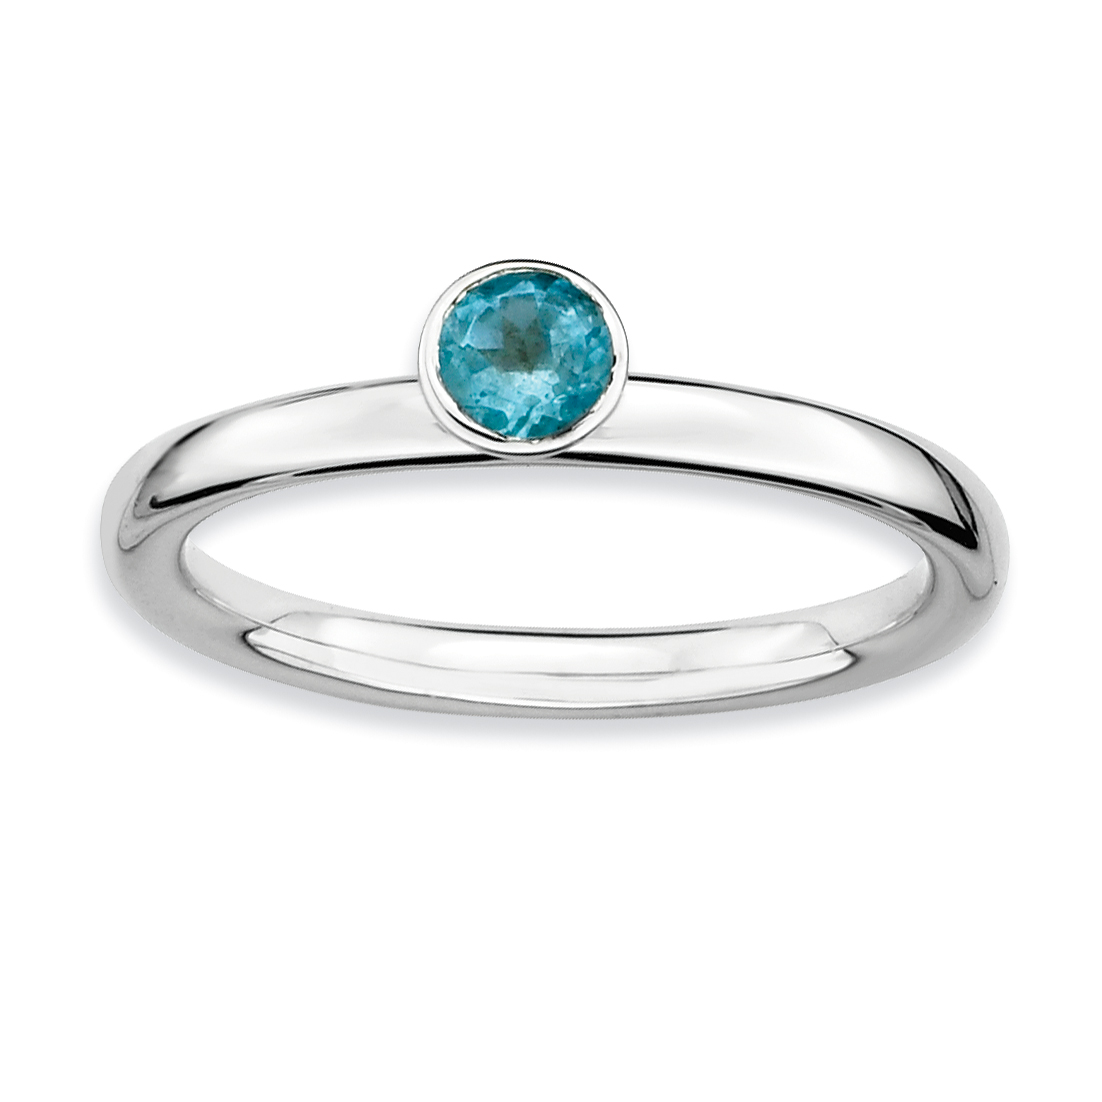 925 Sterling Silver High 4mm Round Blue Topaz Band Ring Size 9.00 Stone Stackable Gemstone Birthstone December Fine Jewelry Gifts For Women For Her - image 4 de 4